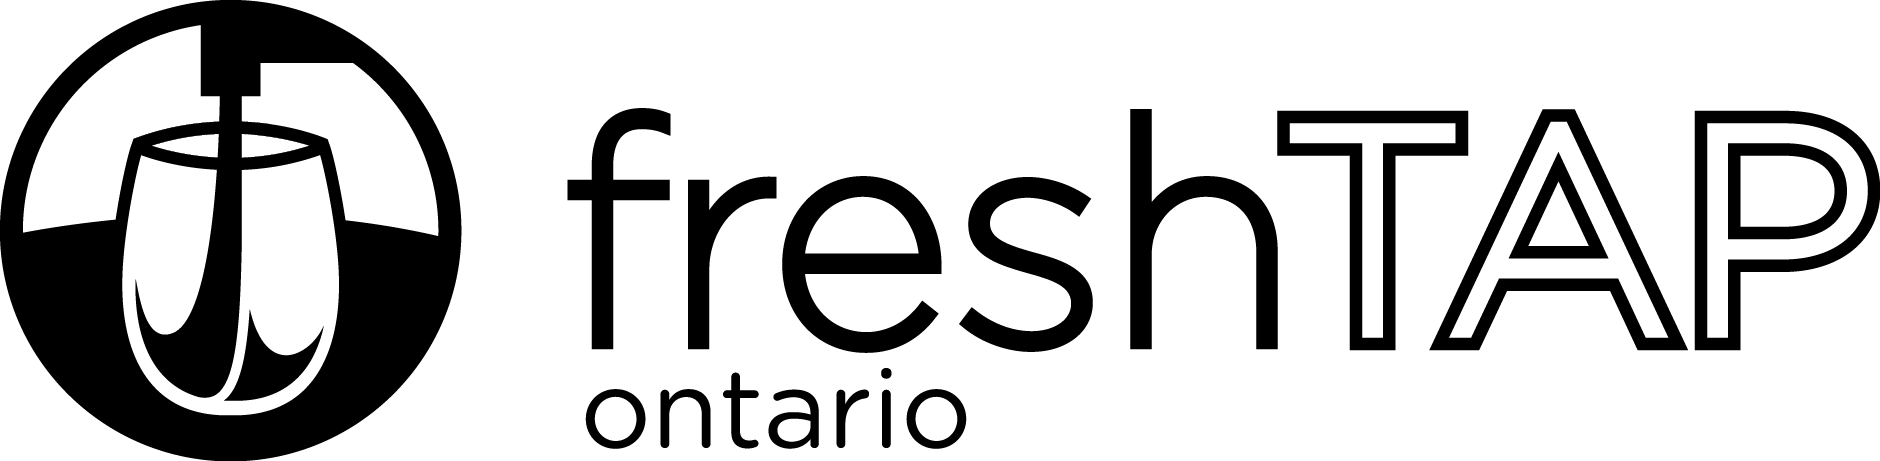 freshtap smarter fresher friendlier